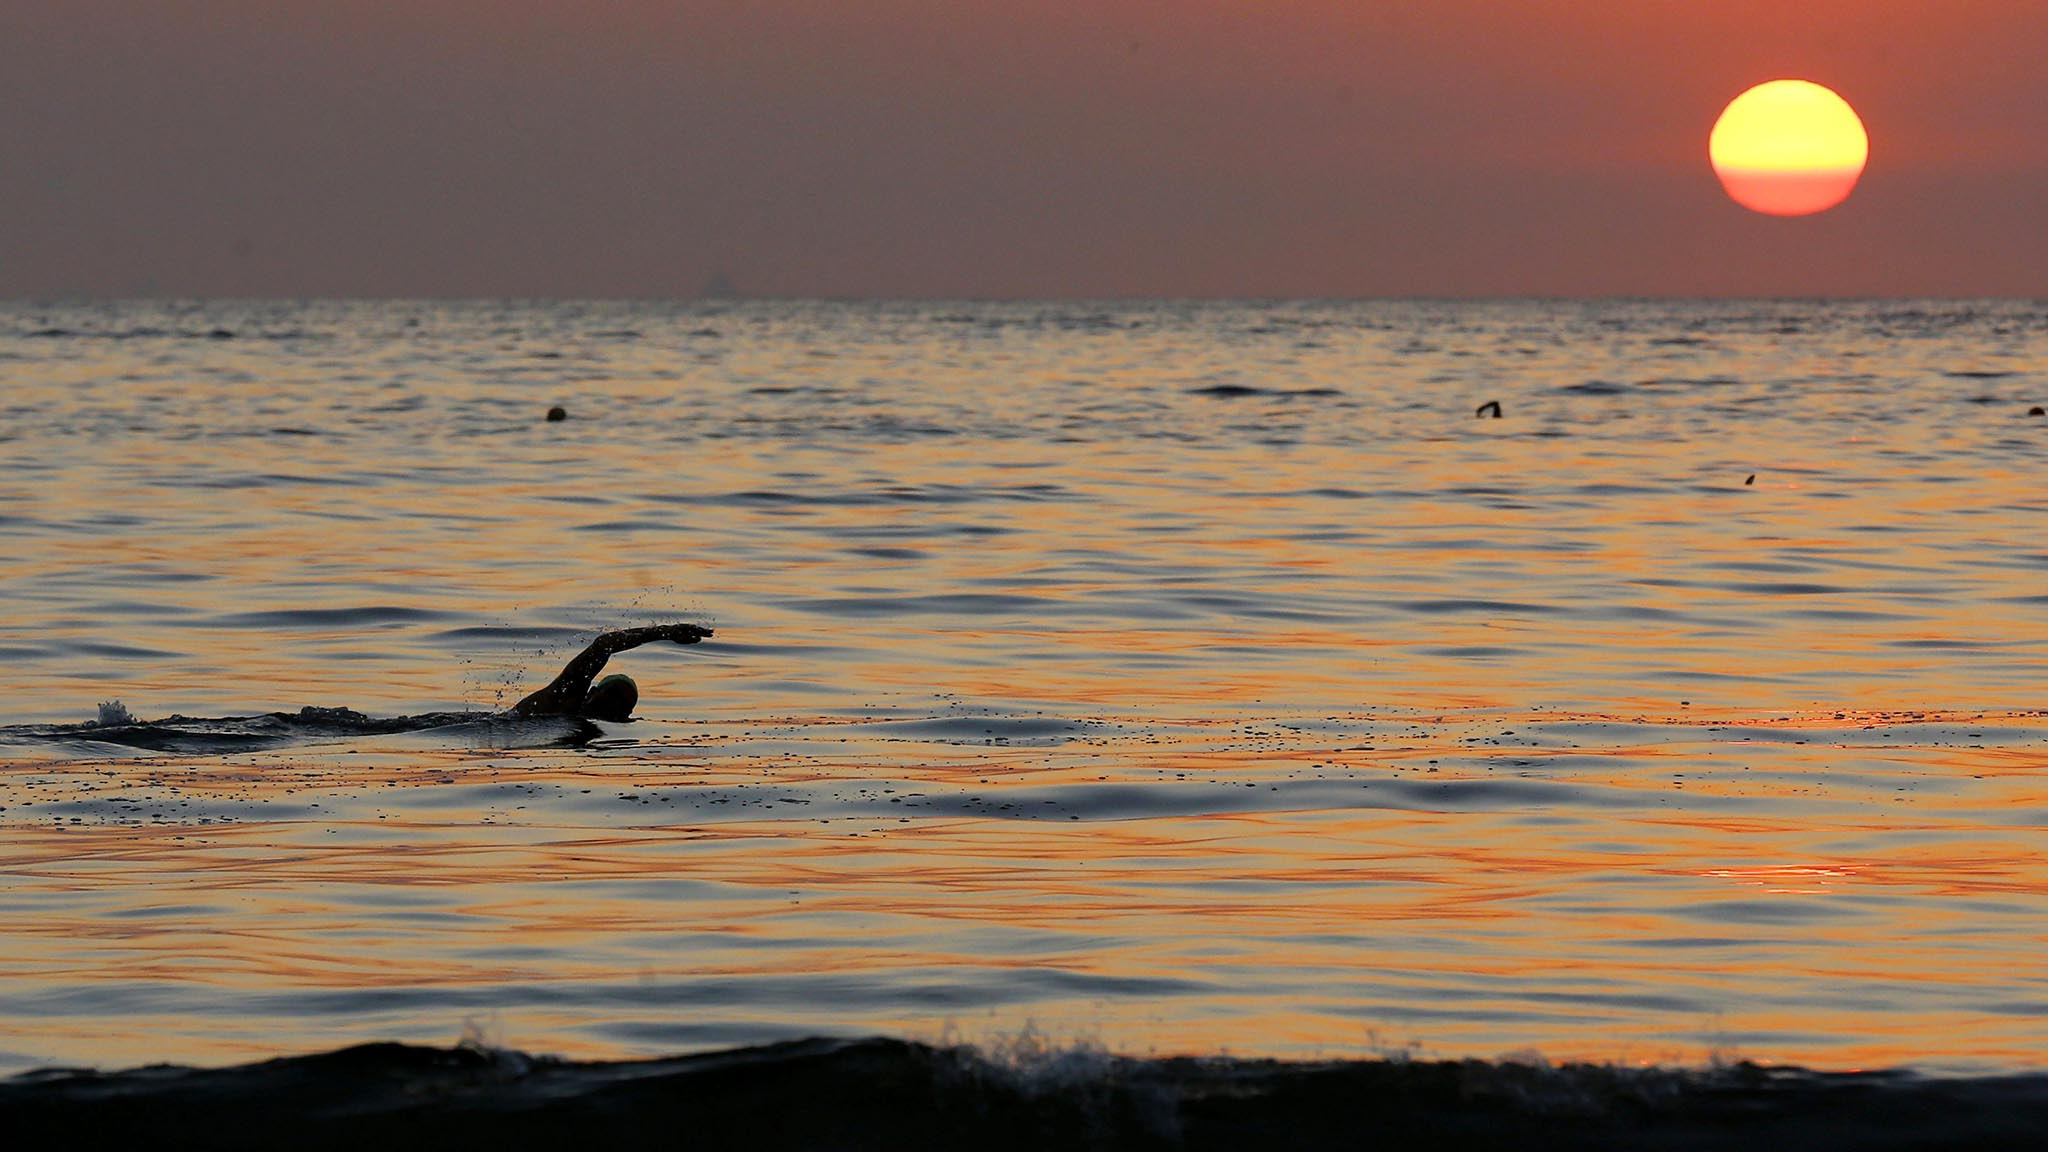 A swimmer practices in the waters of Copacabana beach as the sun rises in Rio de Janeiro